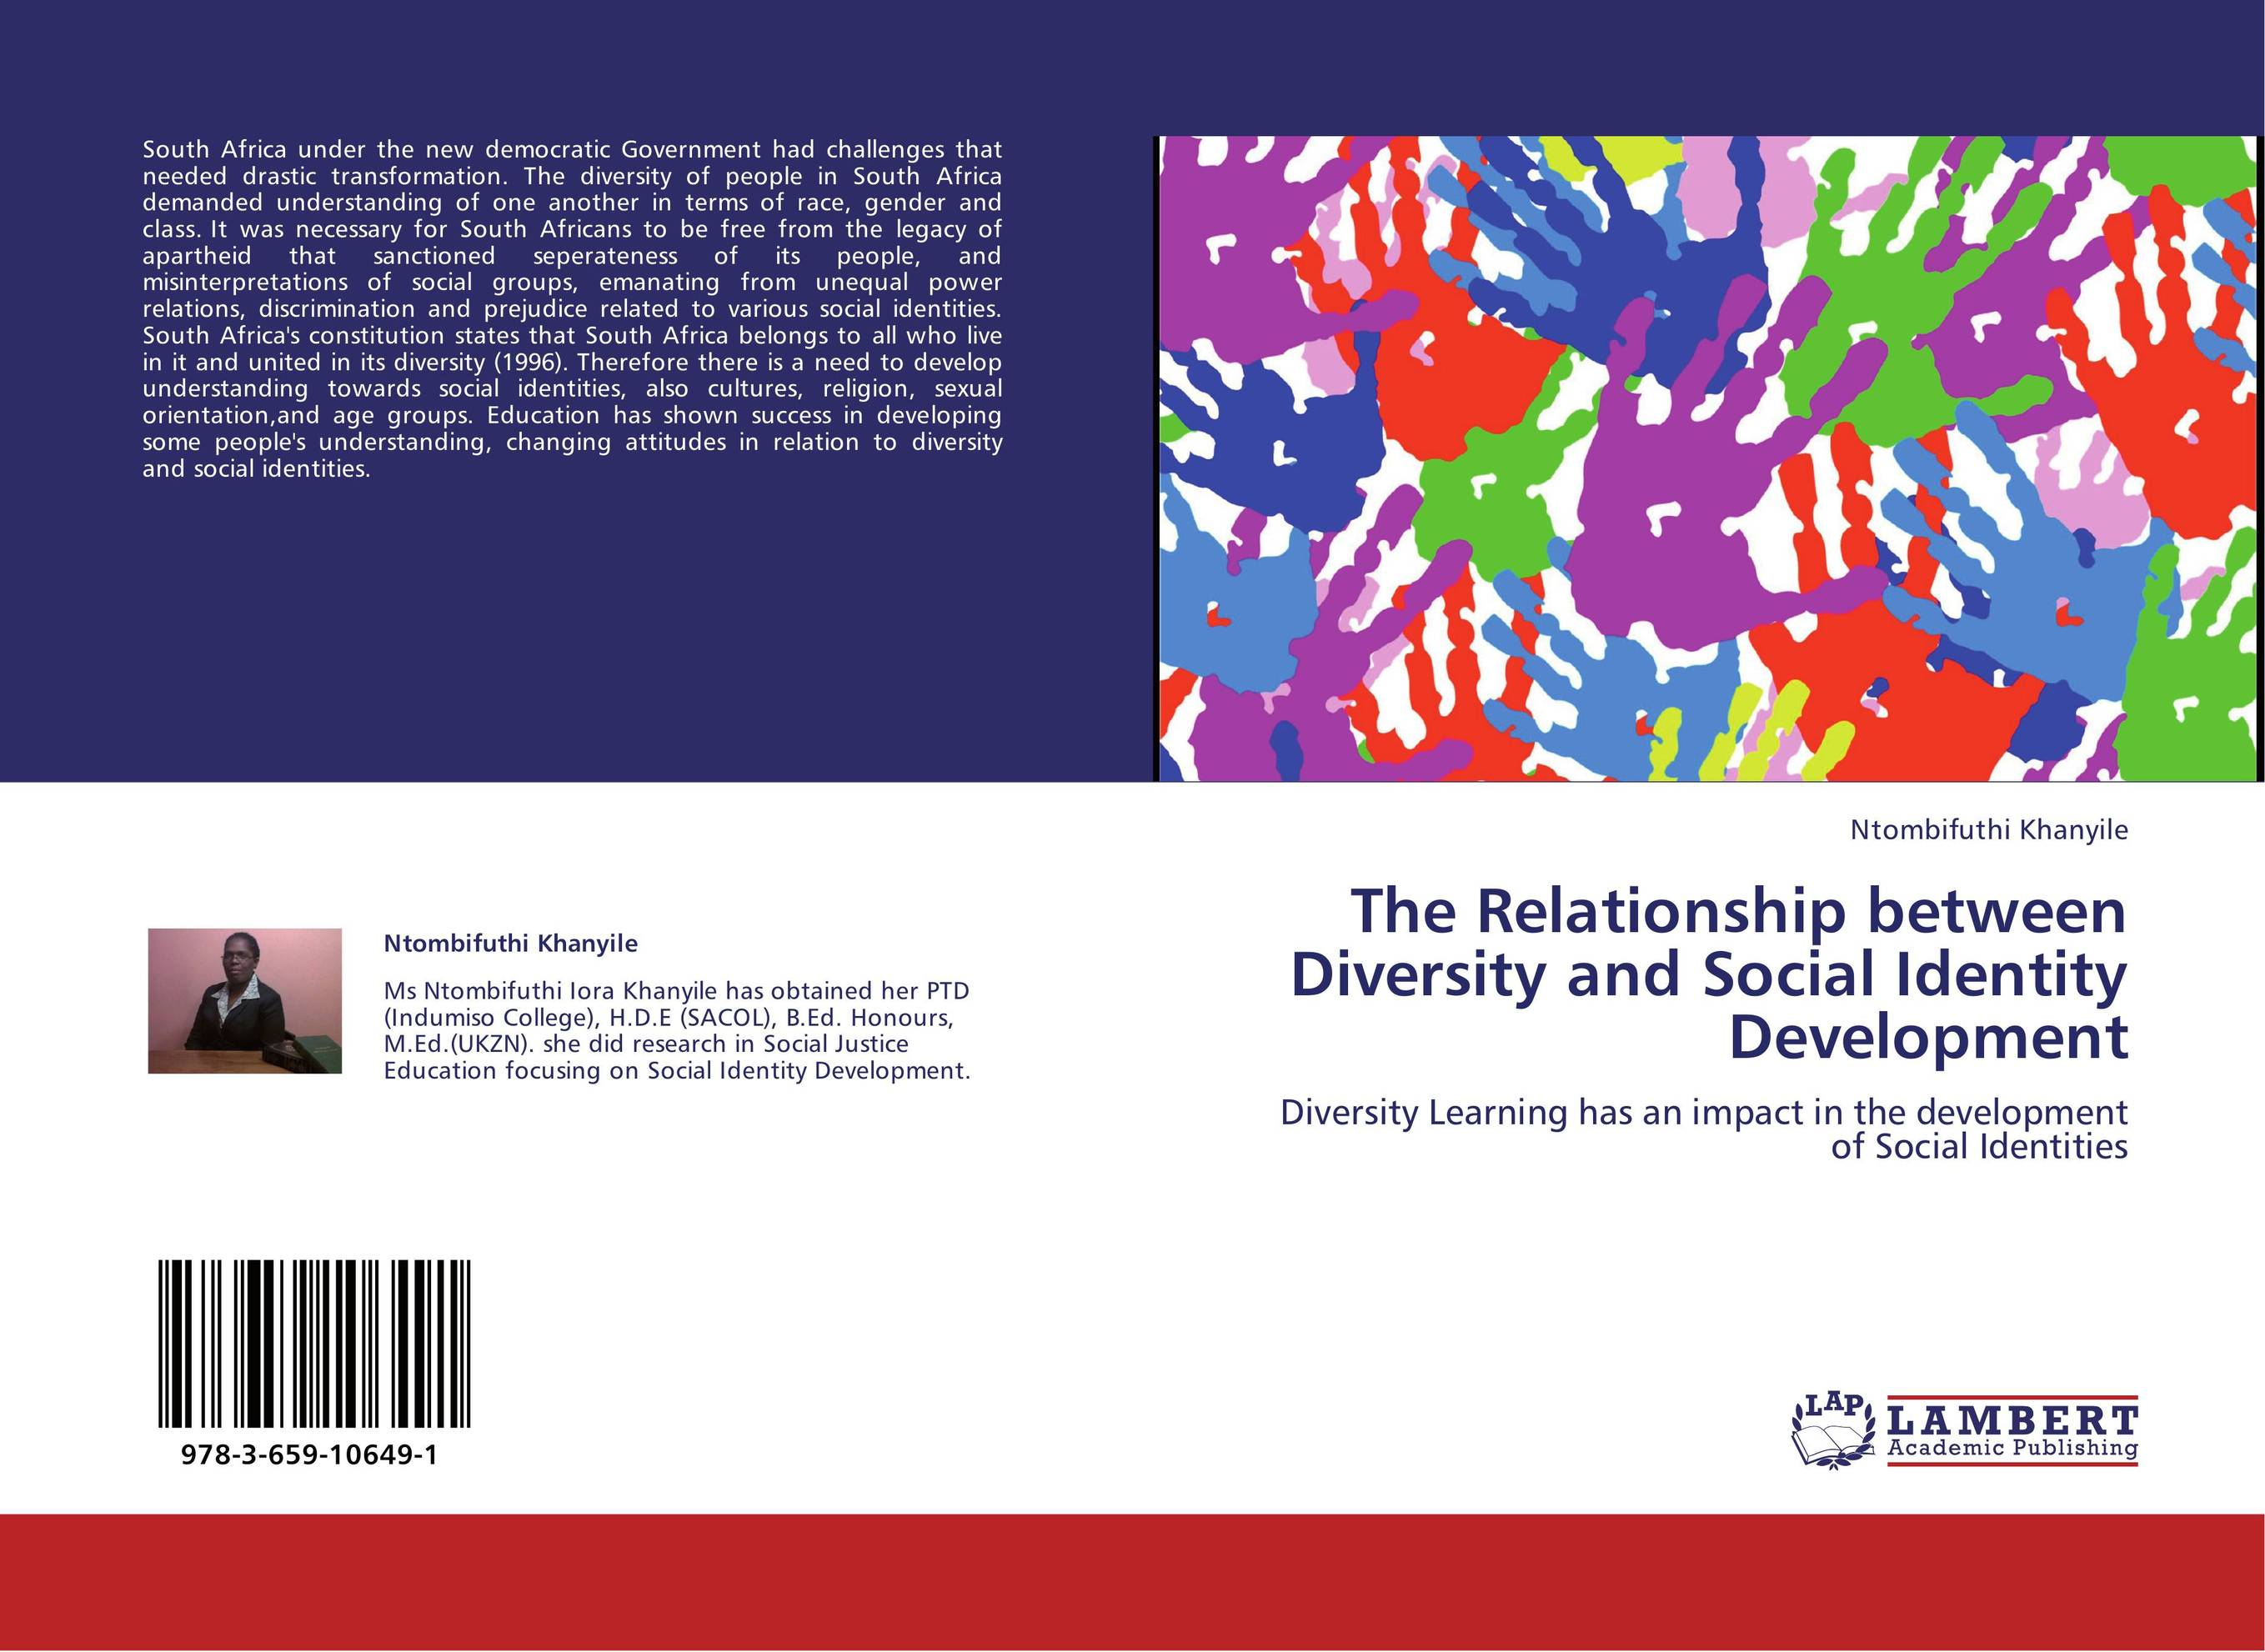 reasons behind the development of gender identity Maputo, sep 14 2018 (ips) - systemic inequalities based on gender, race, income and geography are mirrored in the digital realm and leave many women, especially the poor and the rural, trailing behind africa's tech transformation.